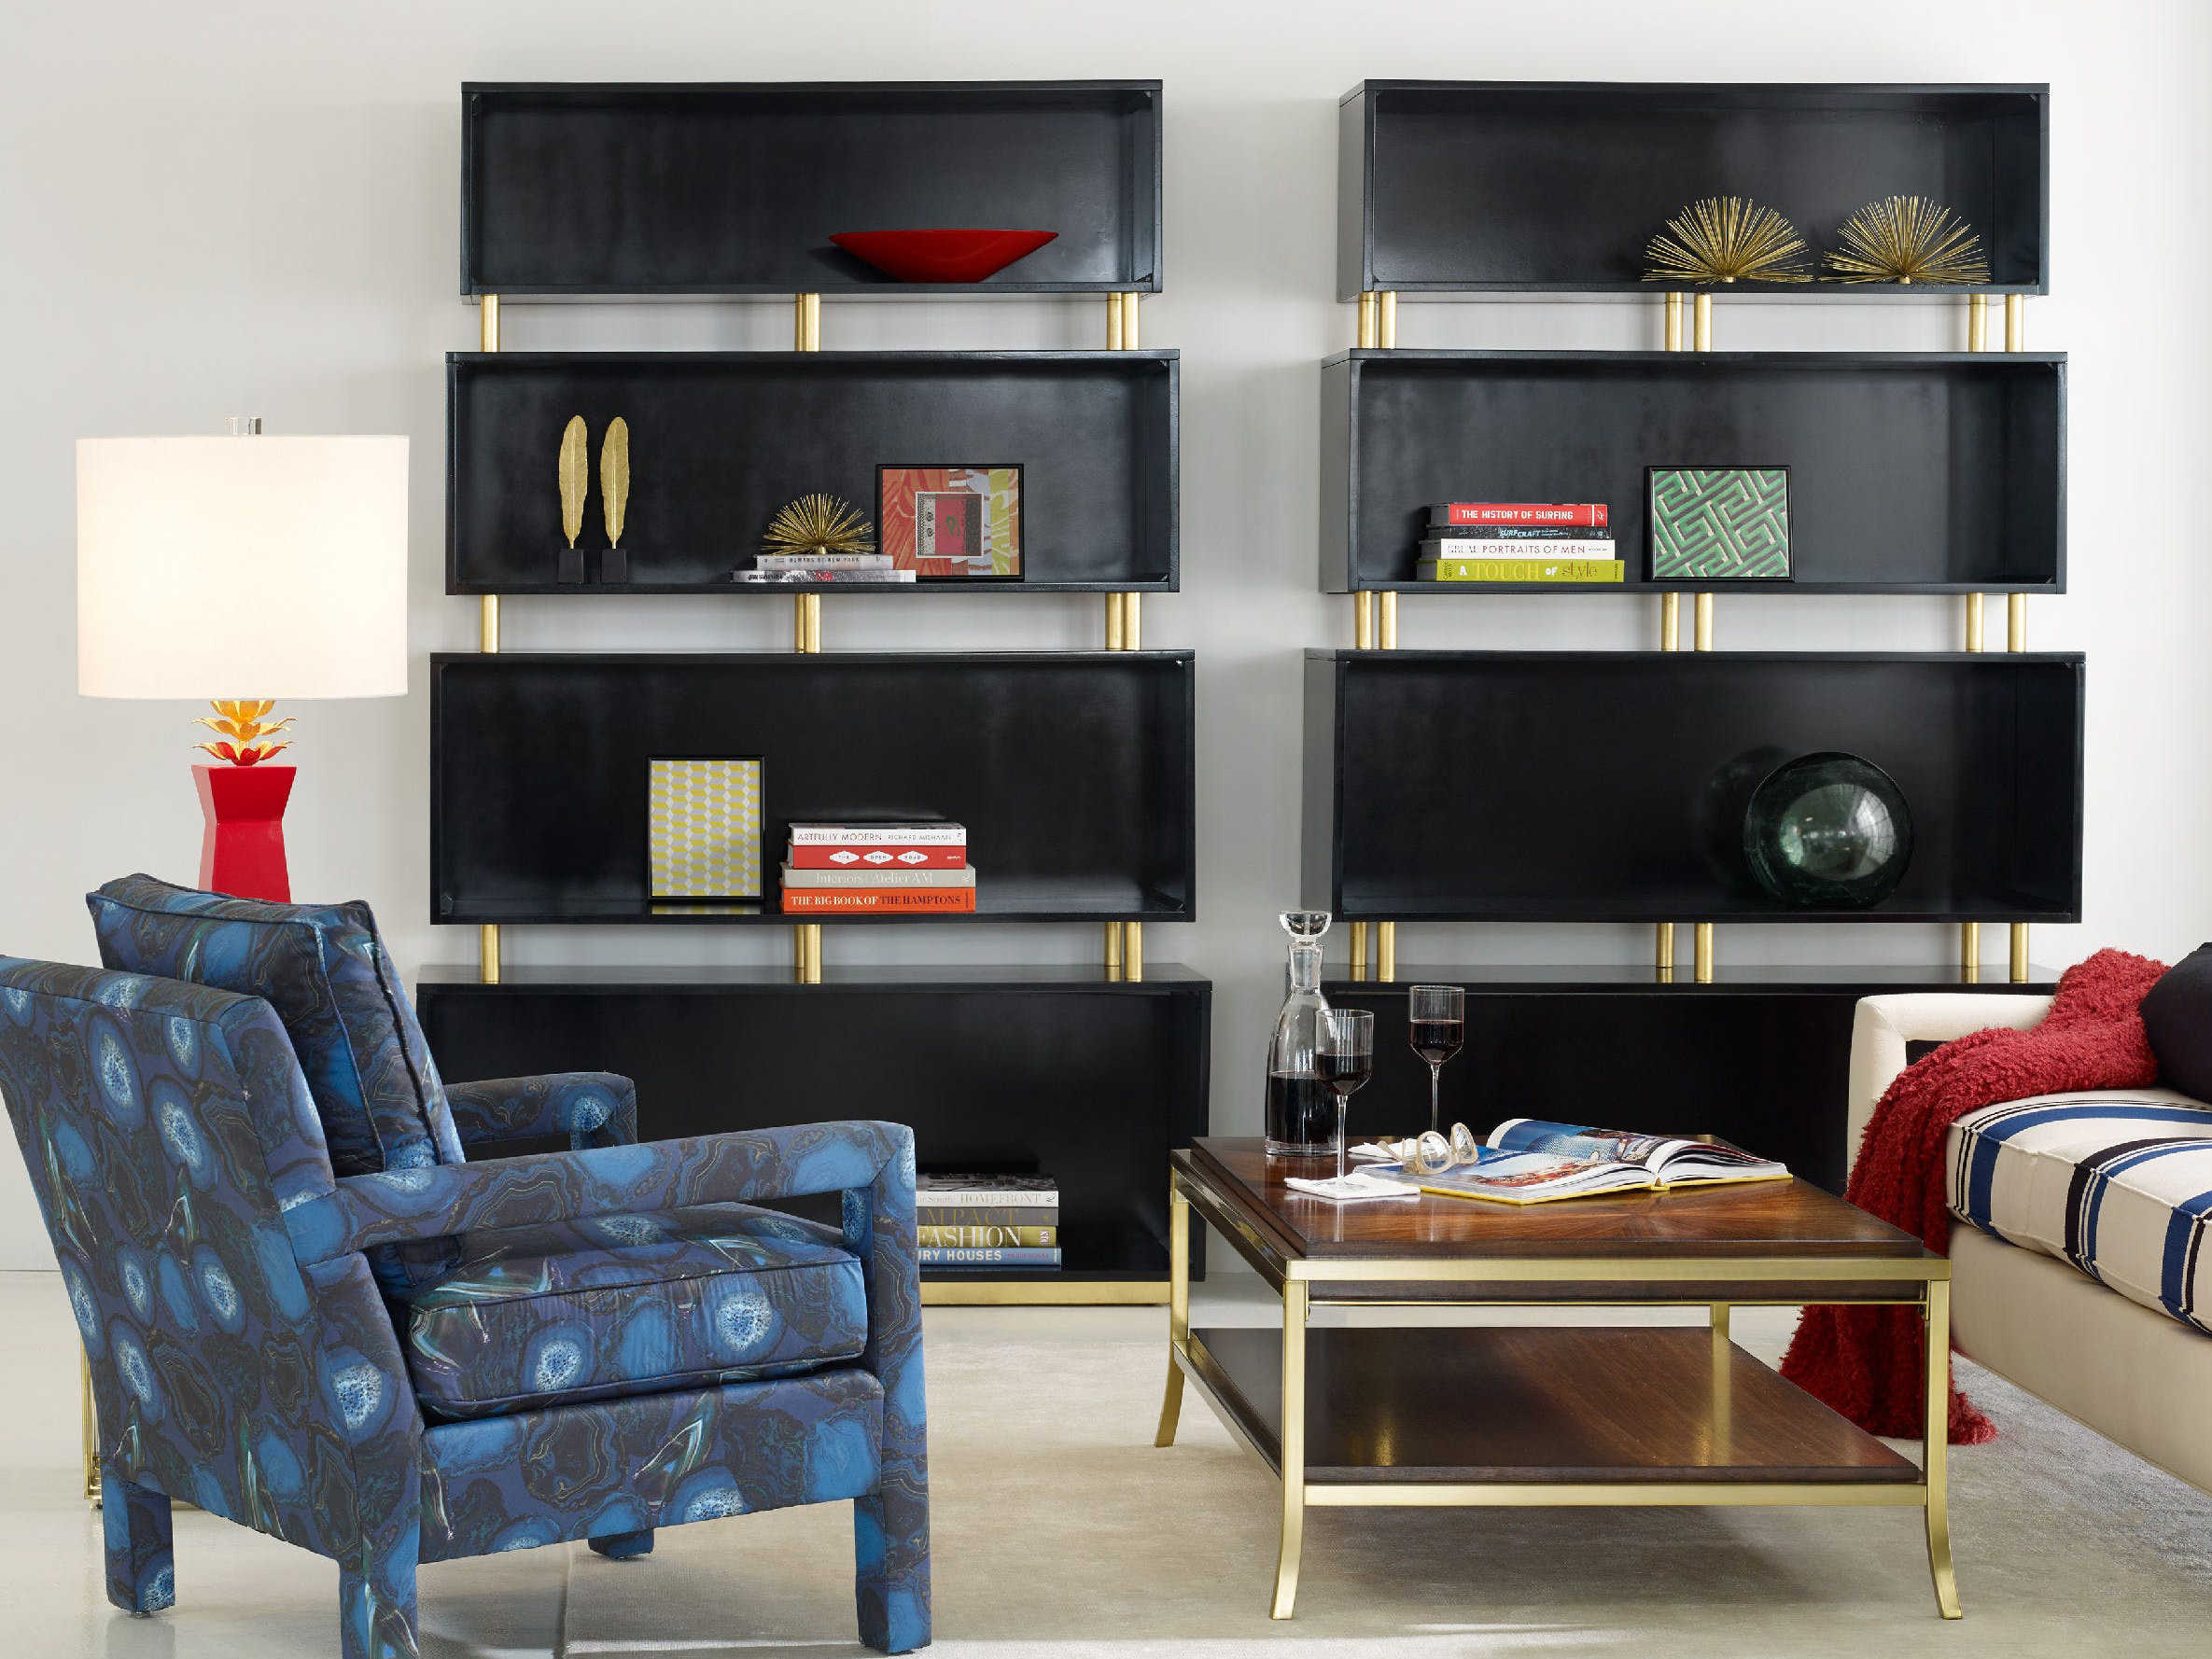 ladder home buy ideas john and wide in at office bookcase furniture livingroom decorating hooker double adagio lewis dark bookcases stowaway rail color with many americana